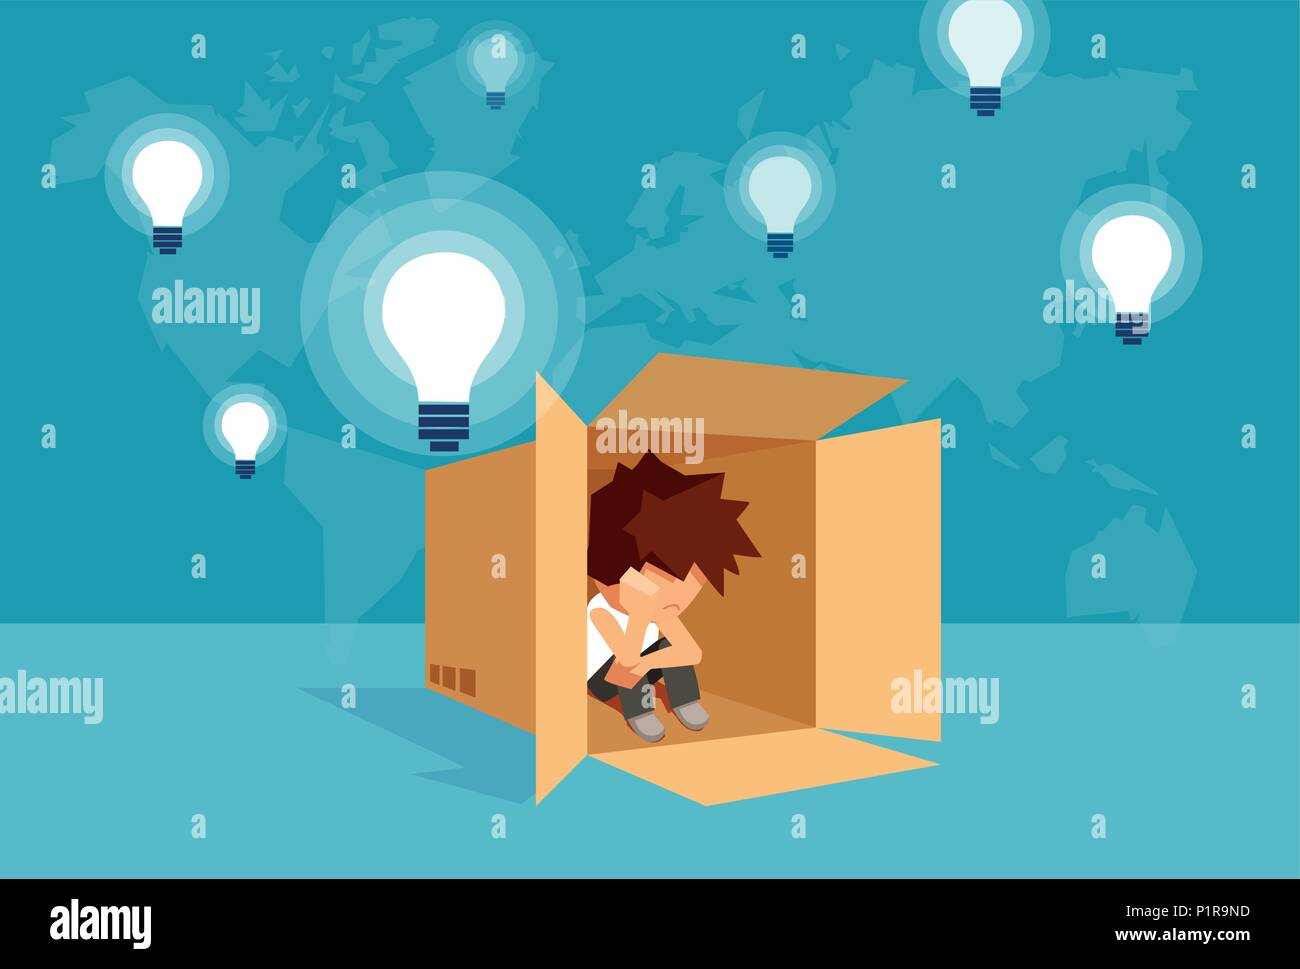 Concept vector illustration of kid sitting alone in box and thinking on problem. - Stock Image